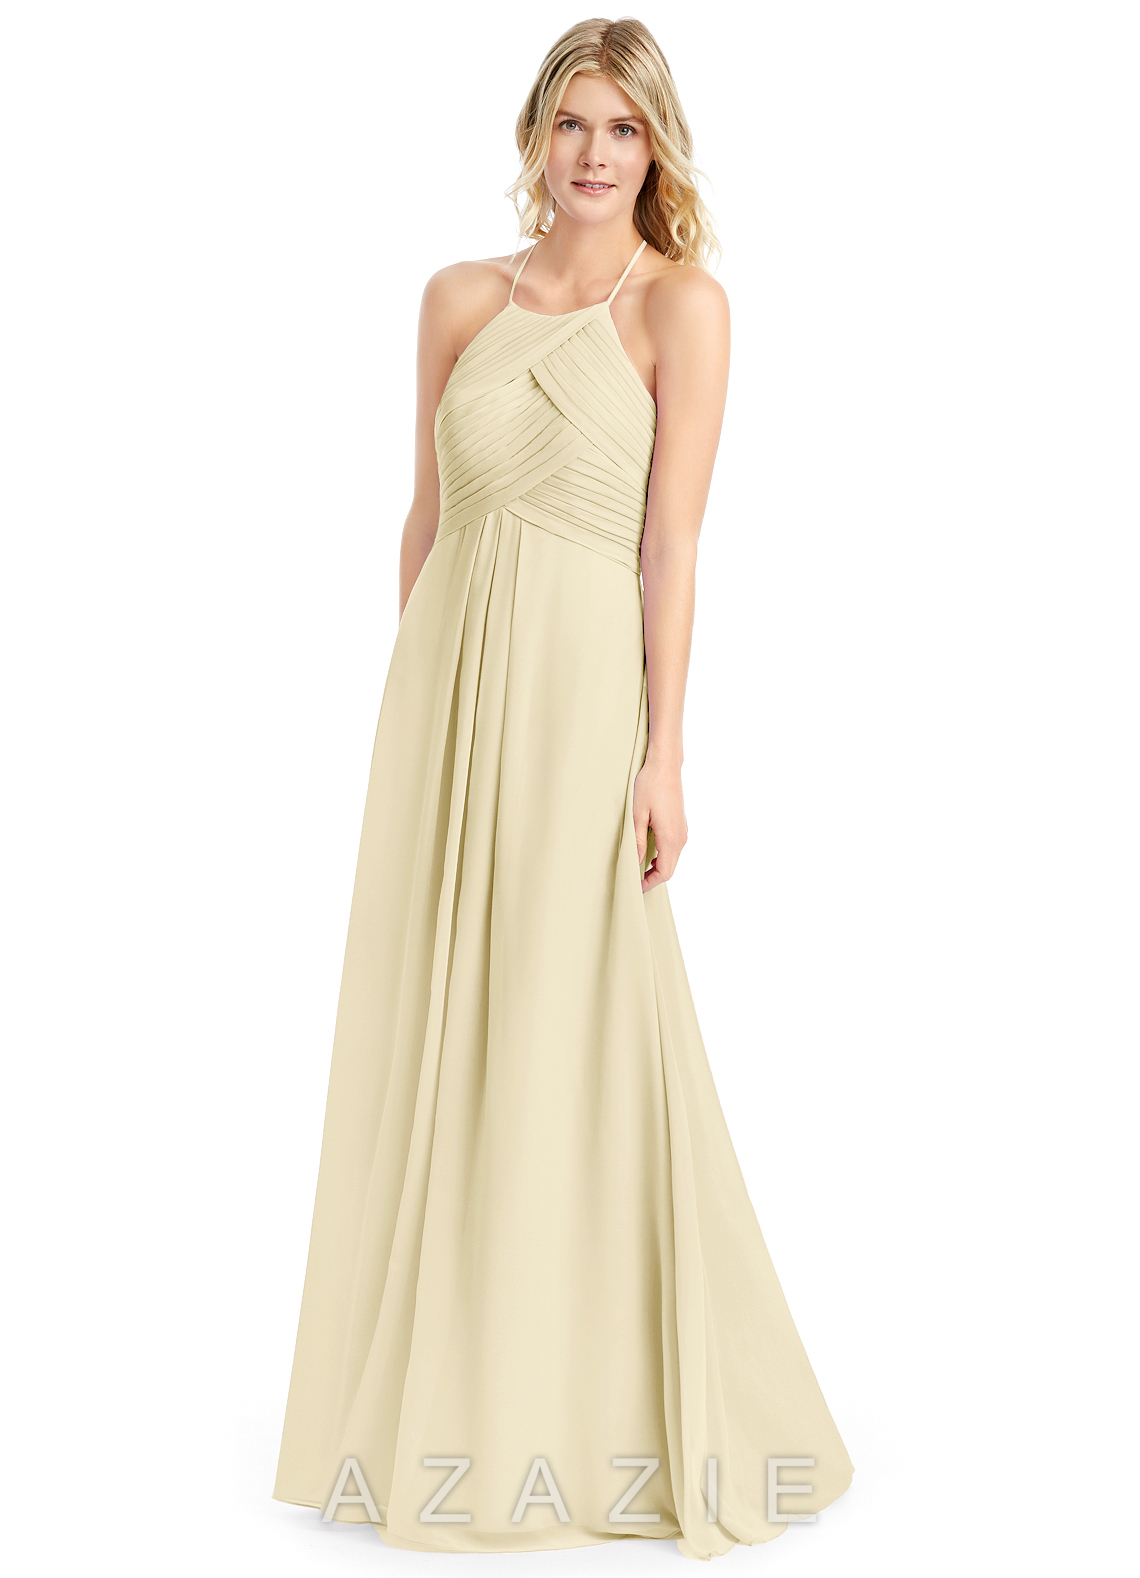 Champagne Bridesmaid Dresses &amp- Champagne Gowns - Azazie